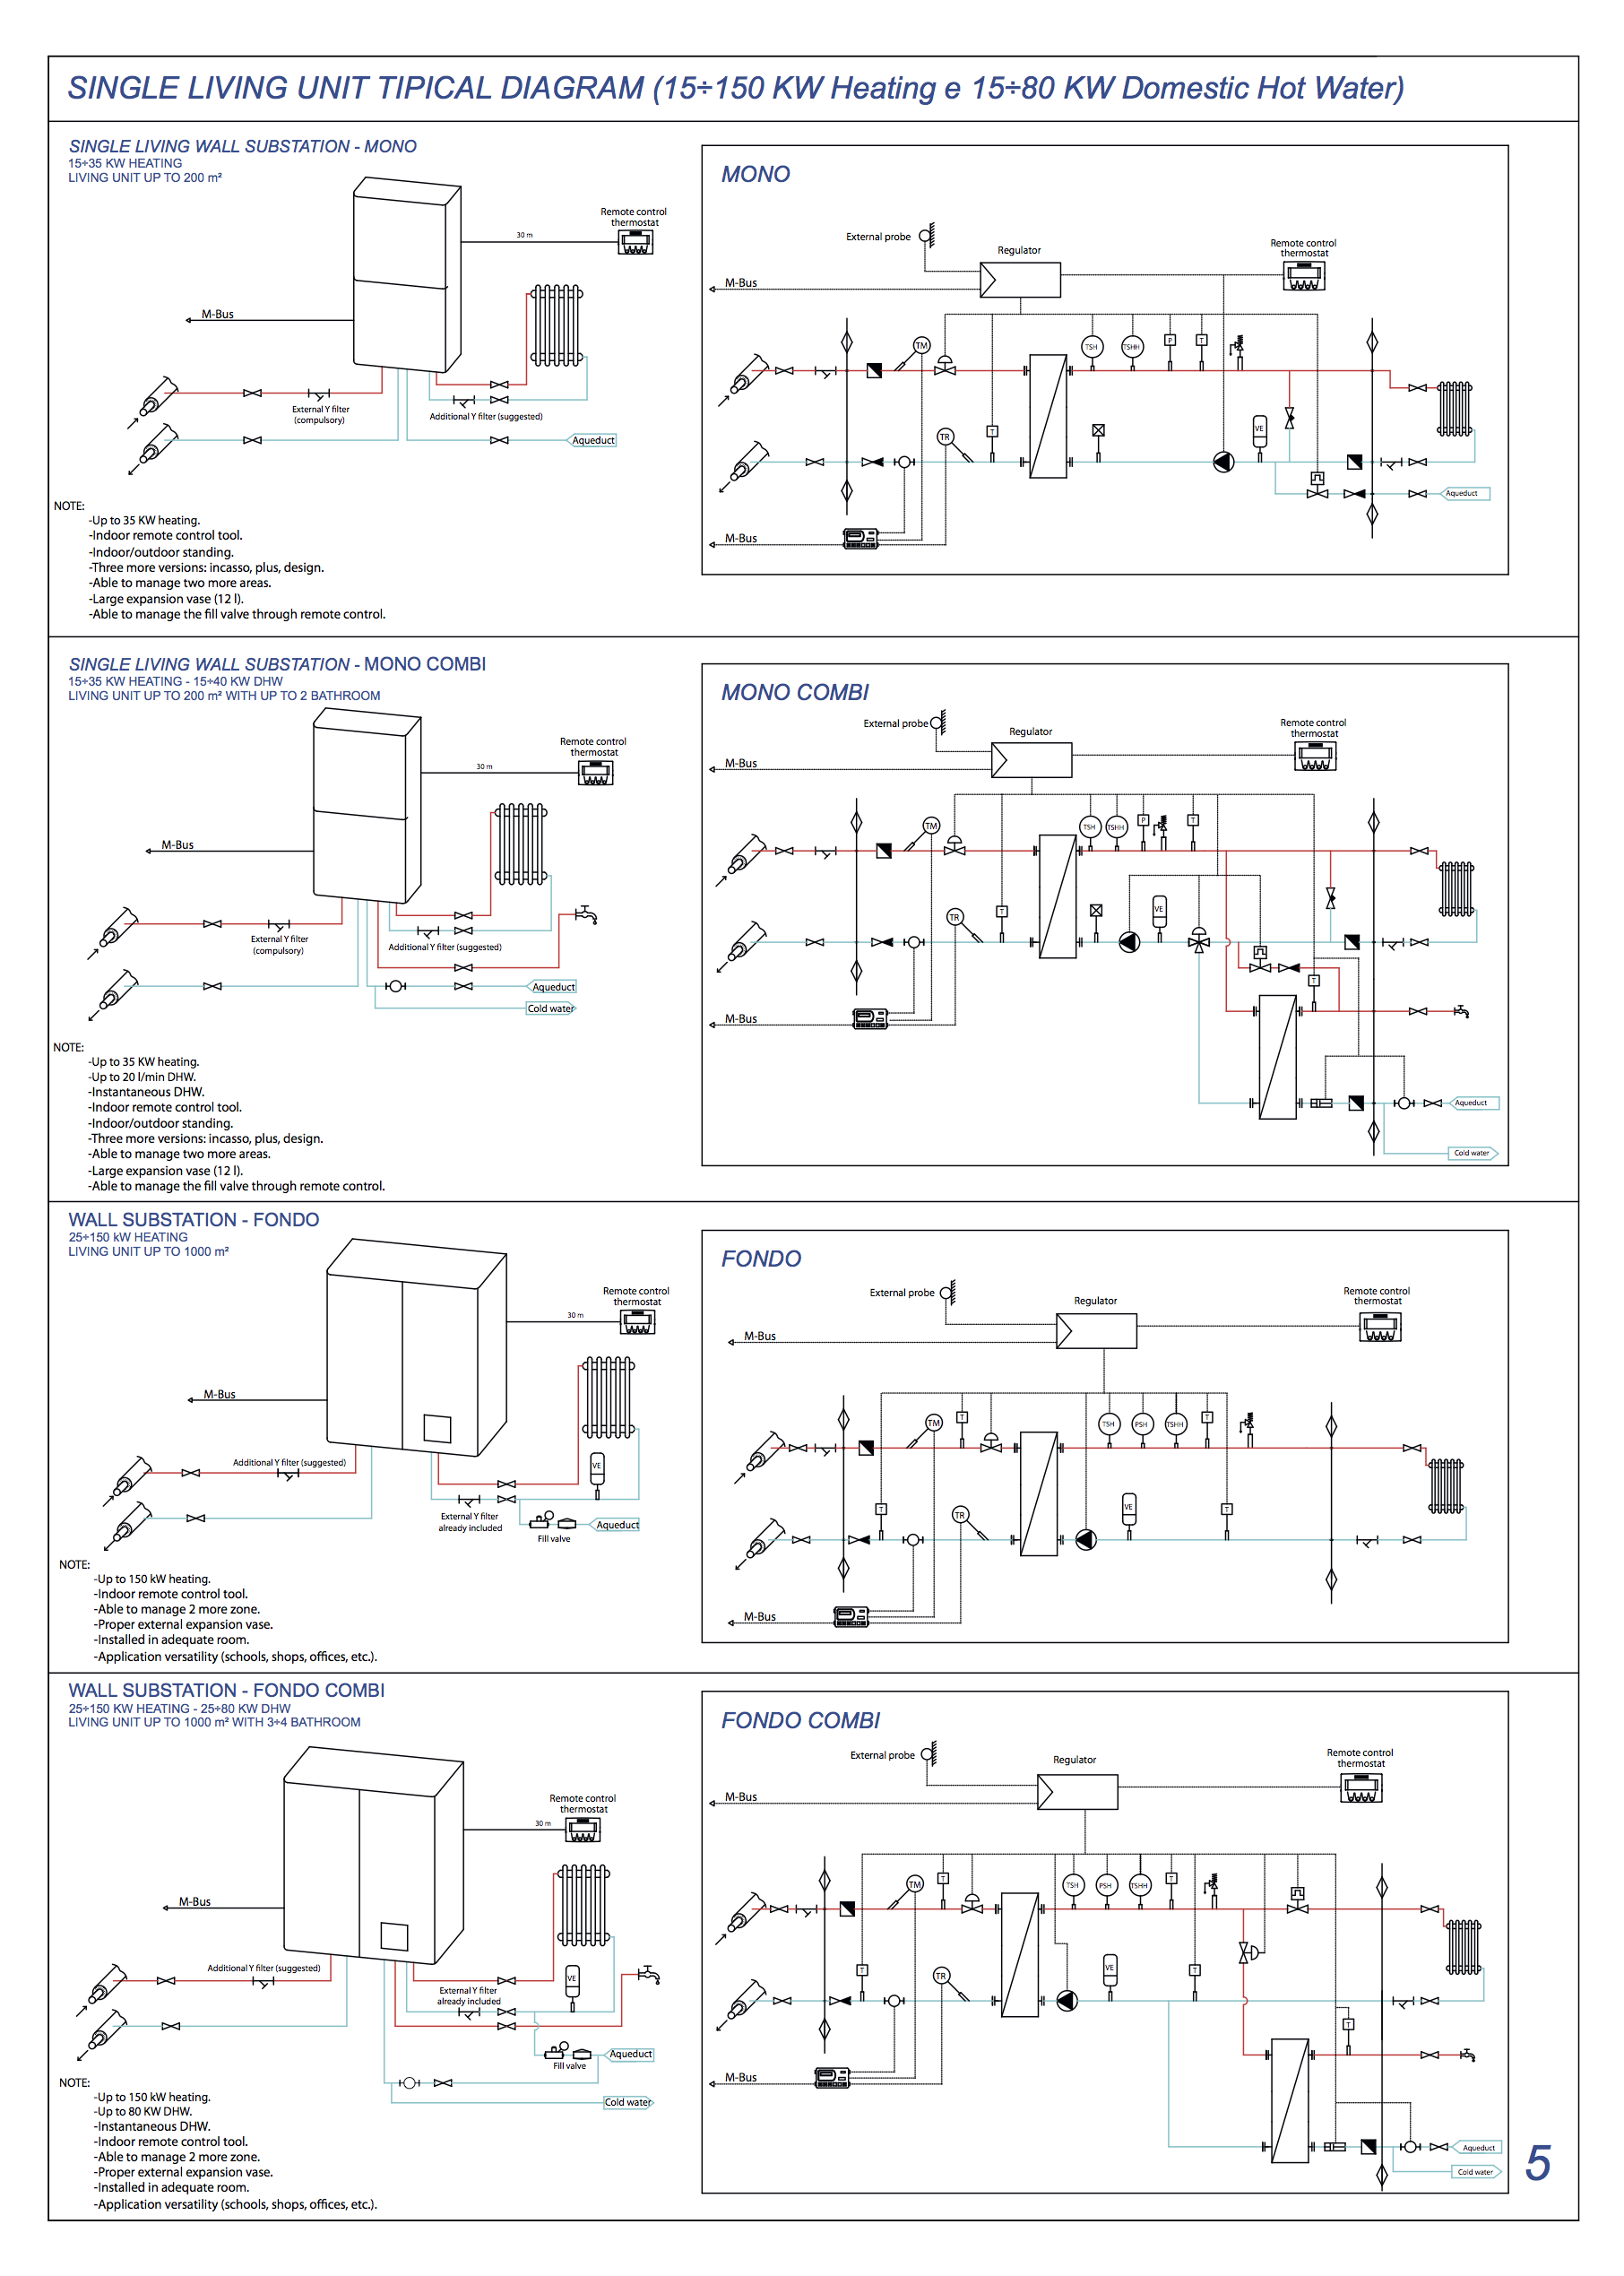 MULTI USERS DOMESTIC HOT WATER TIPICAL DIAGRAM (DHW)